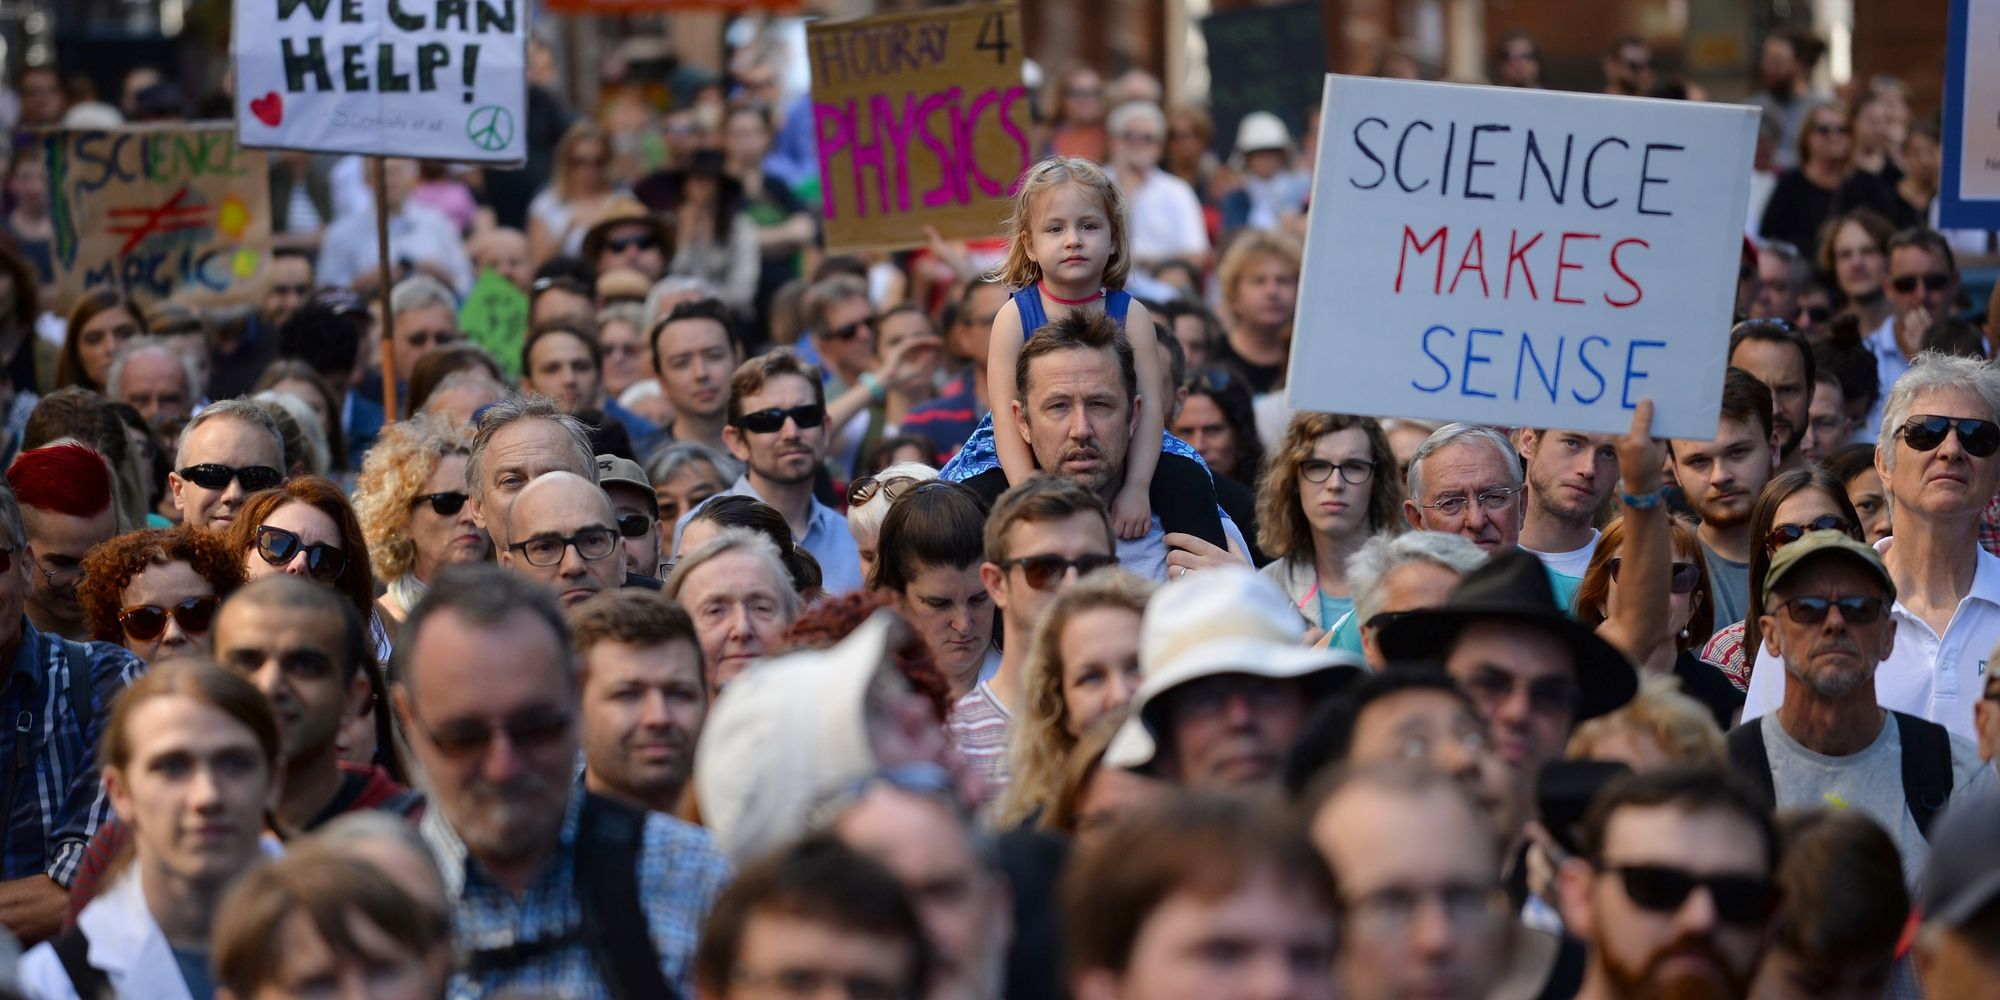 Thousands Across The U.S. And The Globe March For Science In Defiance Of Donald Trump